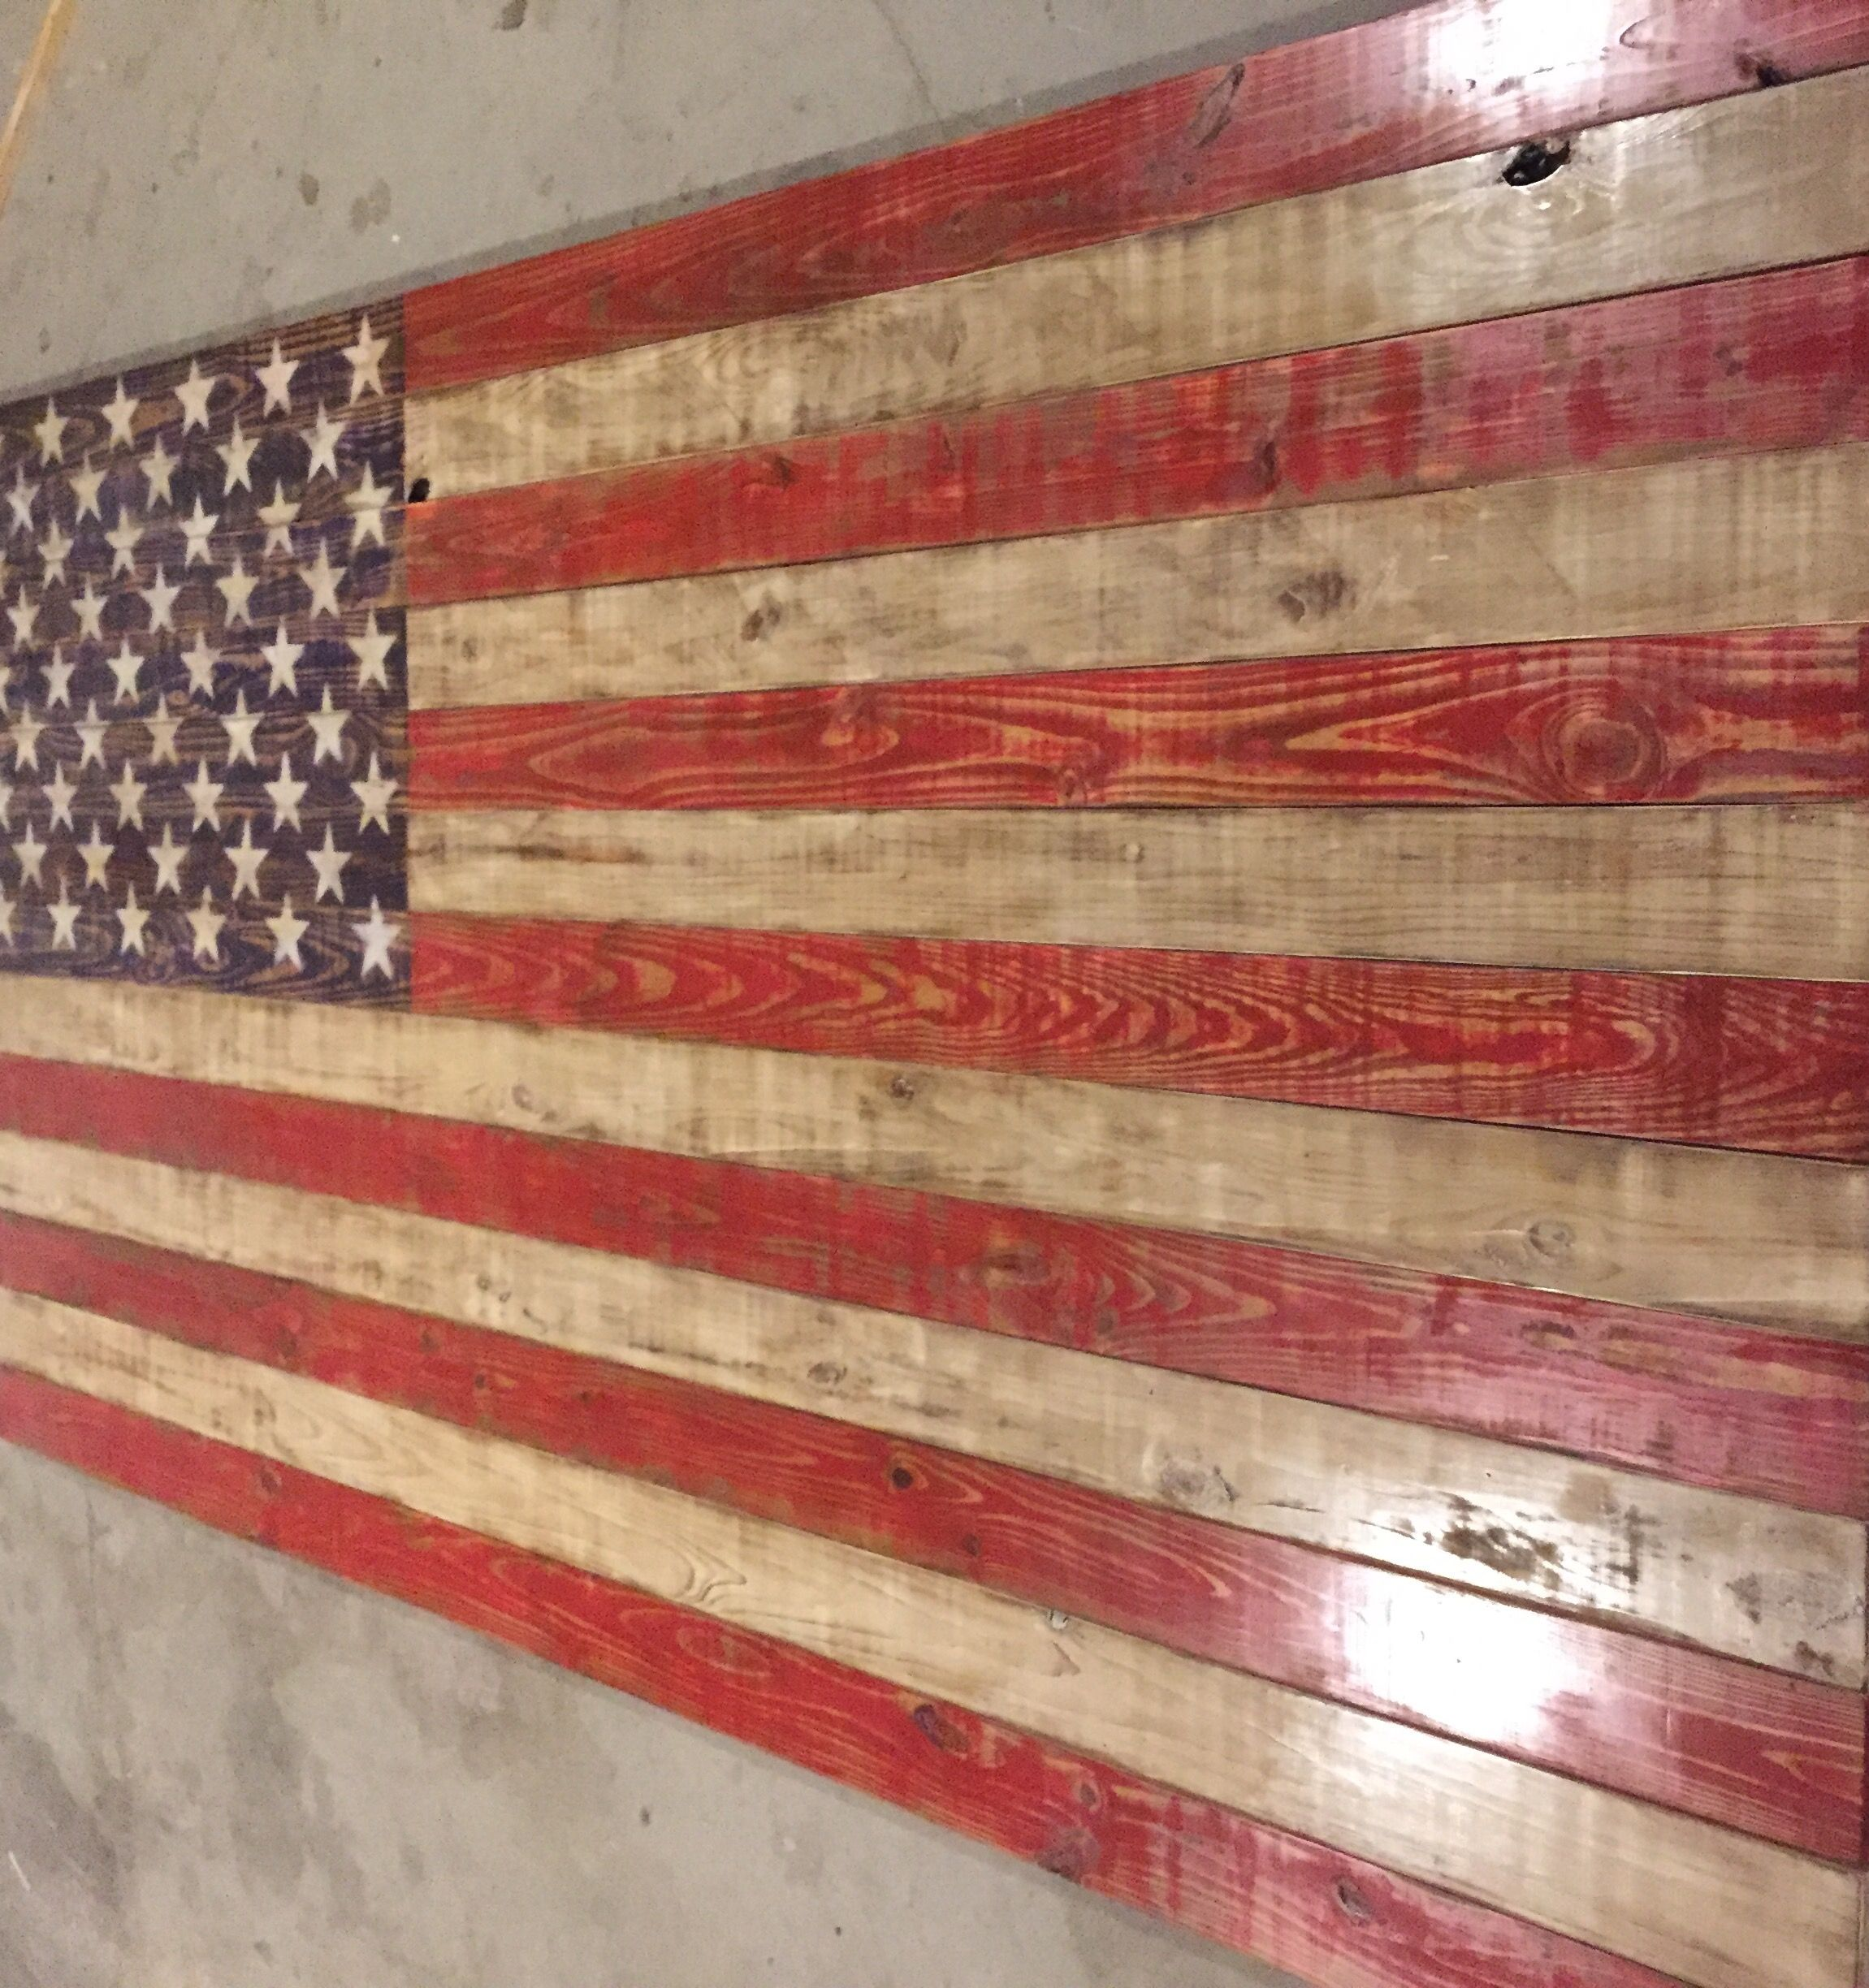 Extra Large American Flag Approximately 5 Tall X 9 Wide Painted And Stained Not Burnt Wooden Flag Large American Flag American Flag